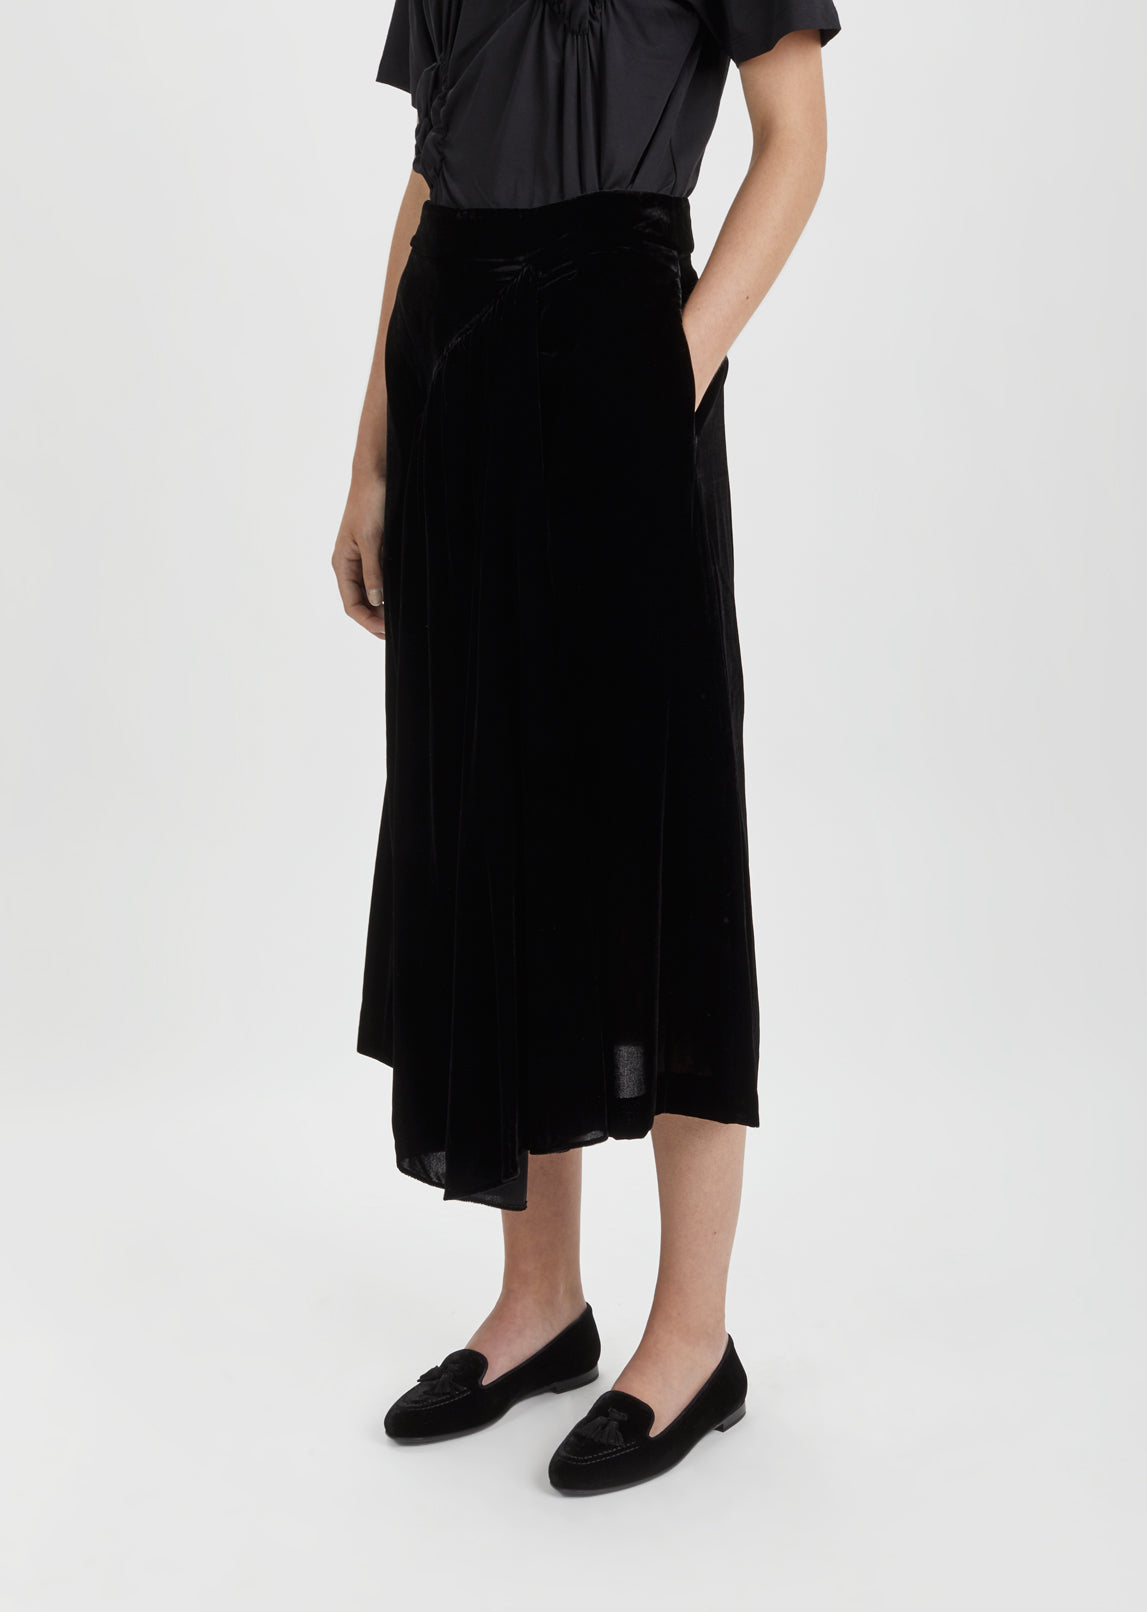 Three Panel Velvet Skirt